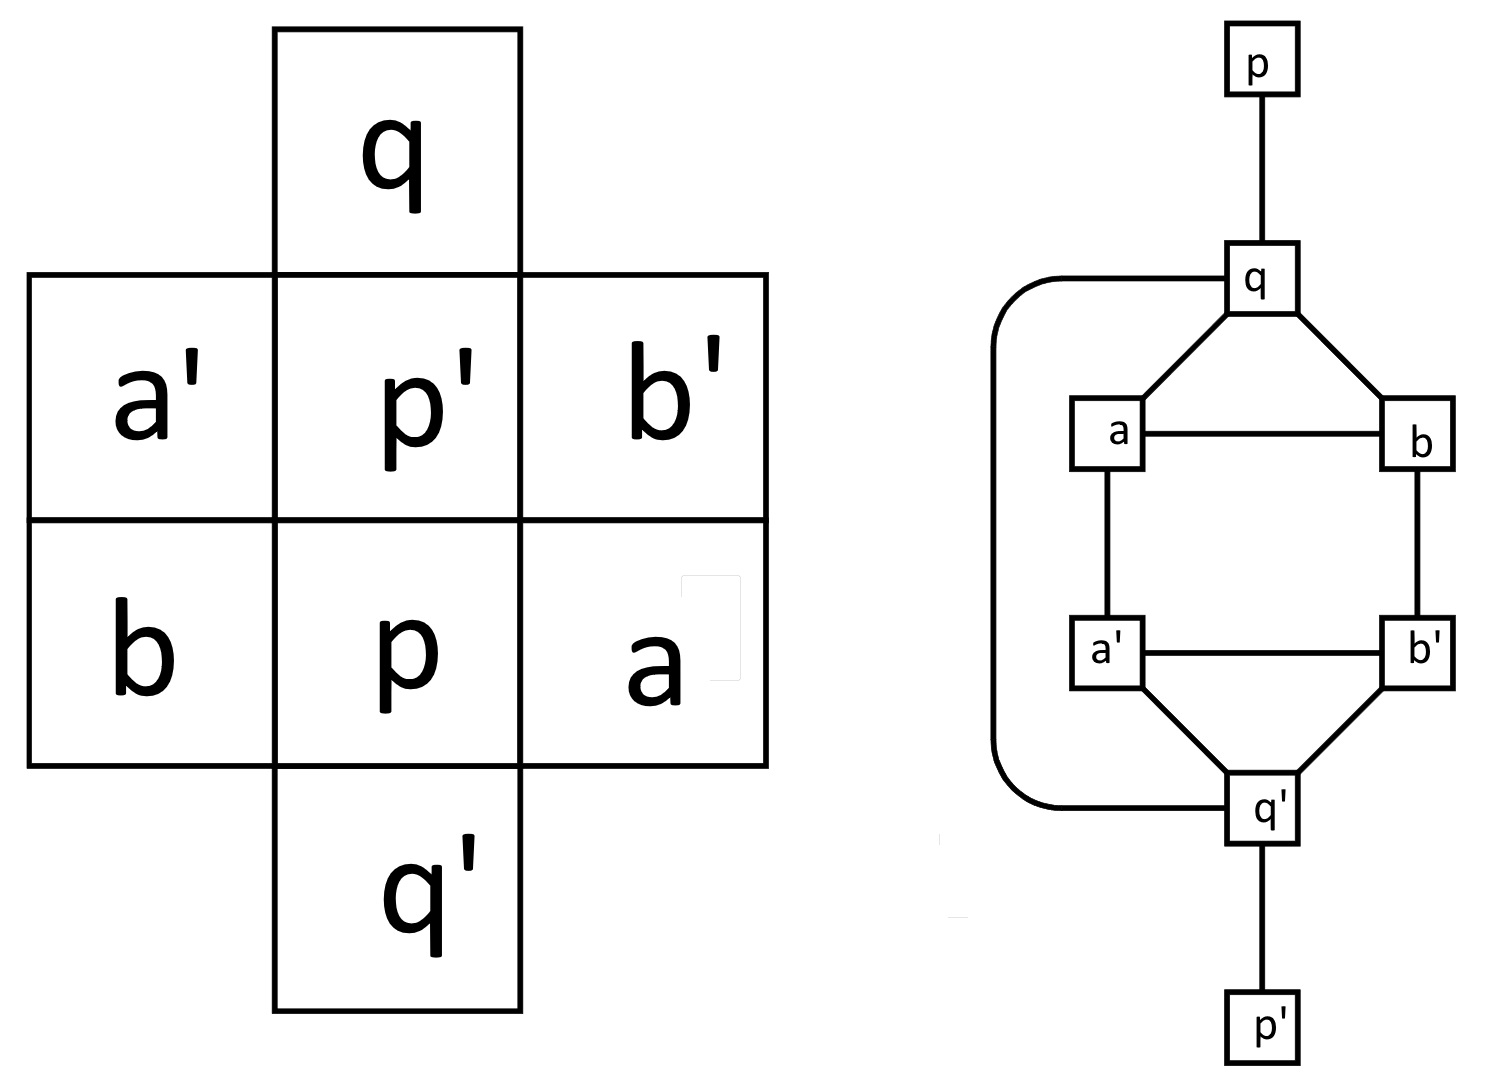 two networks with letters in the boxes